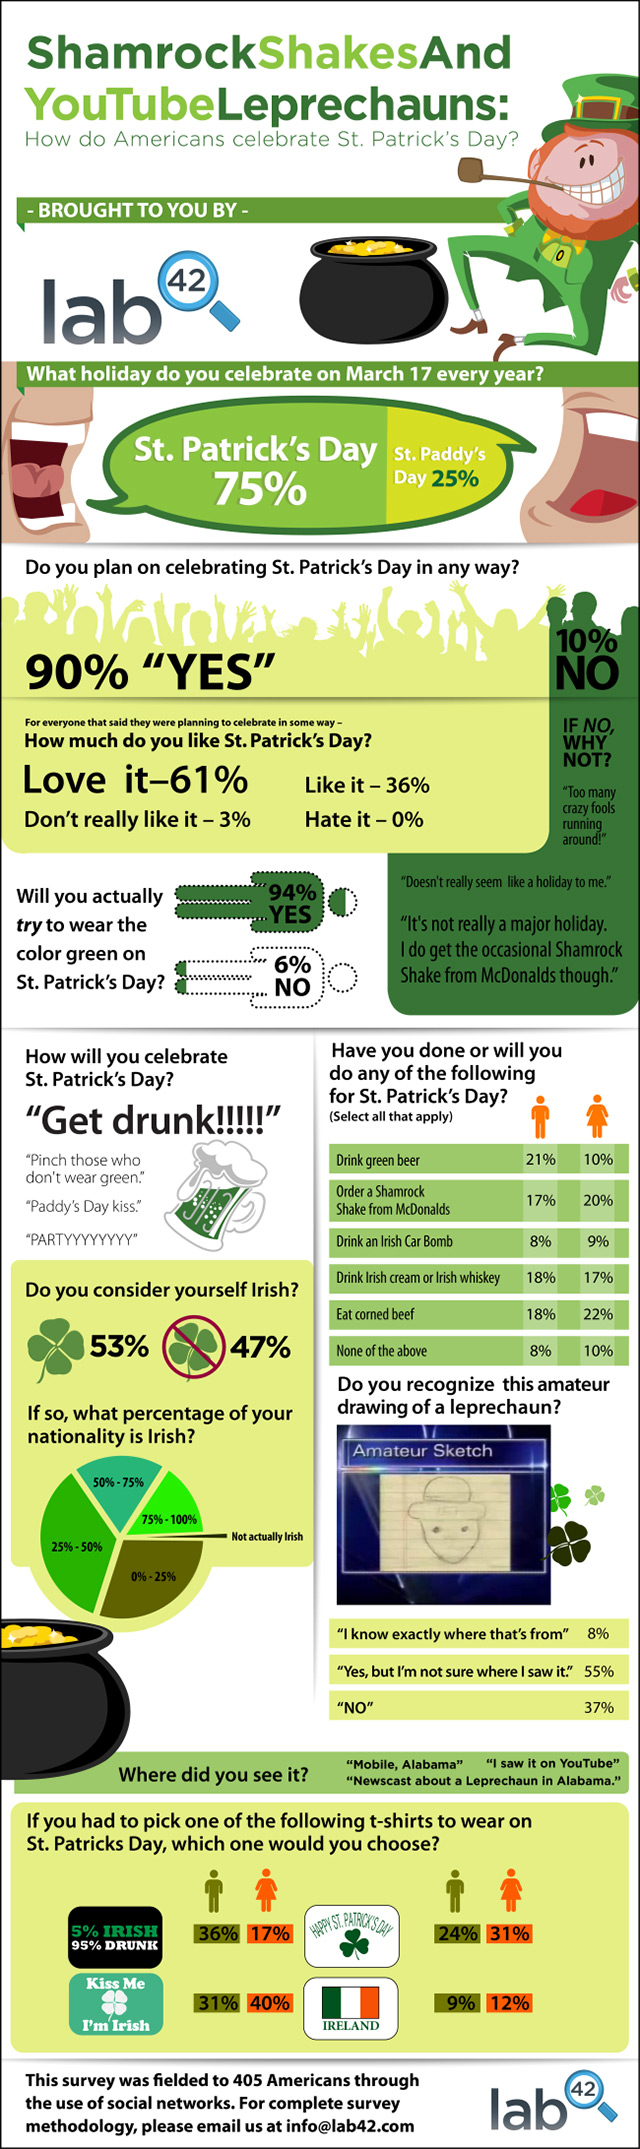 How Do Social Networkers Celebrate St. Patrick's Day?